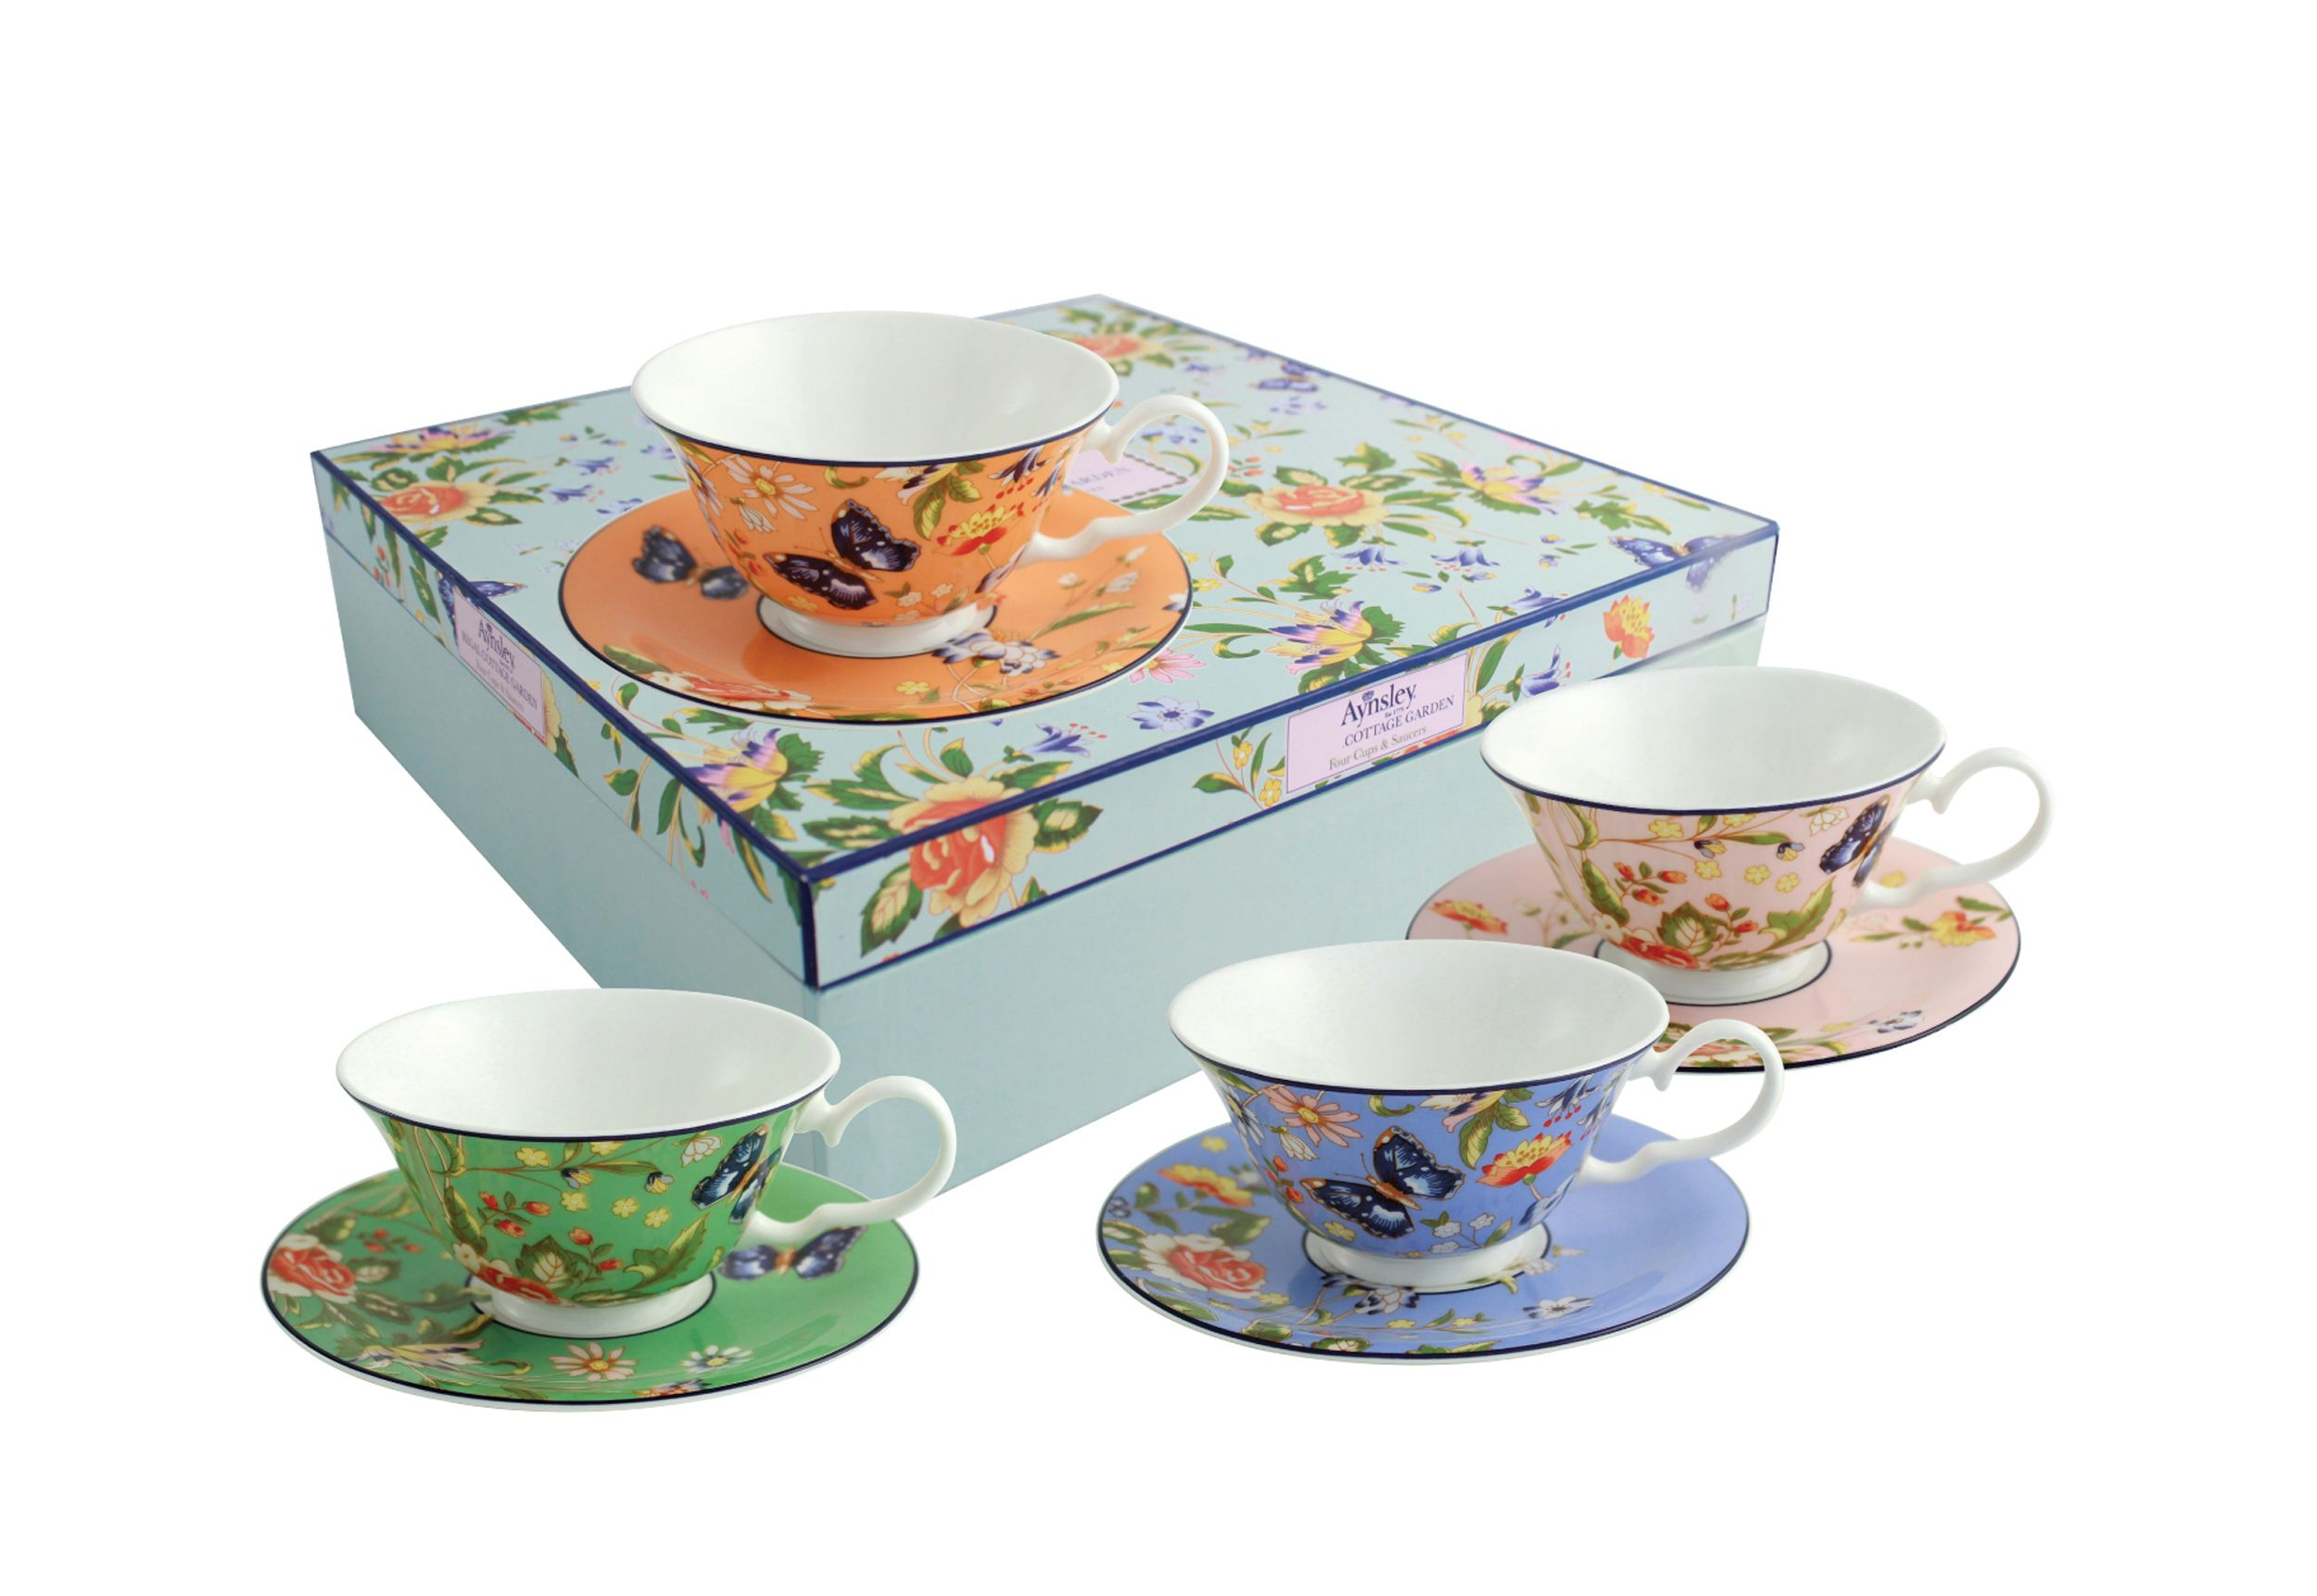 Aynsley Aynsley Cottage garden windsor teacups & saucers set of 4